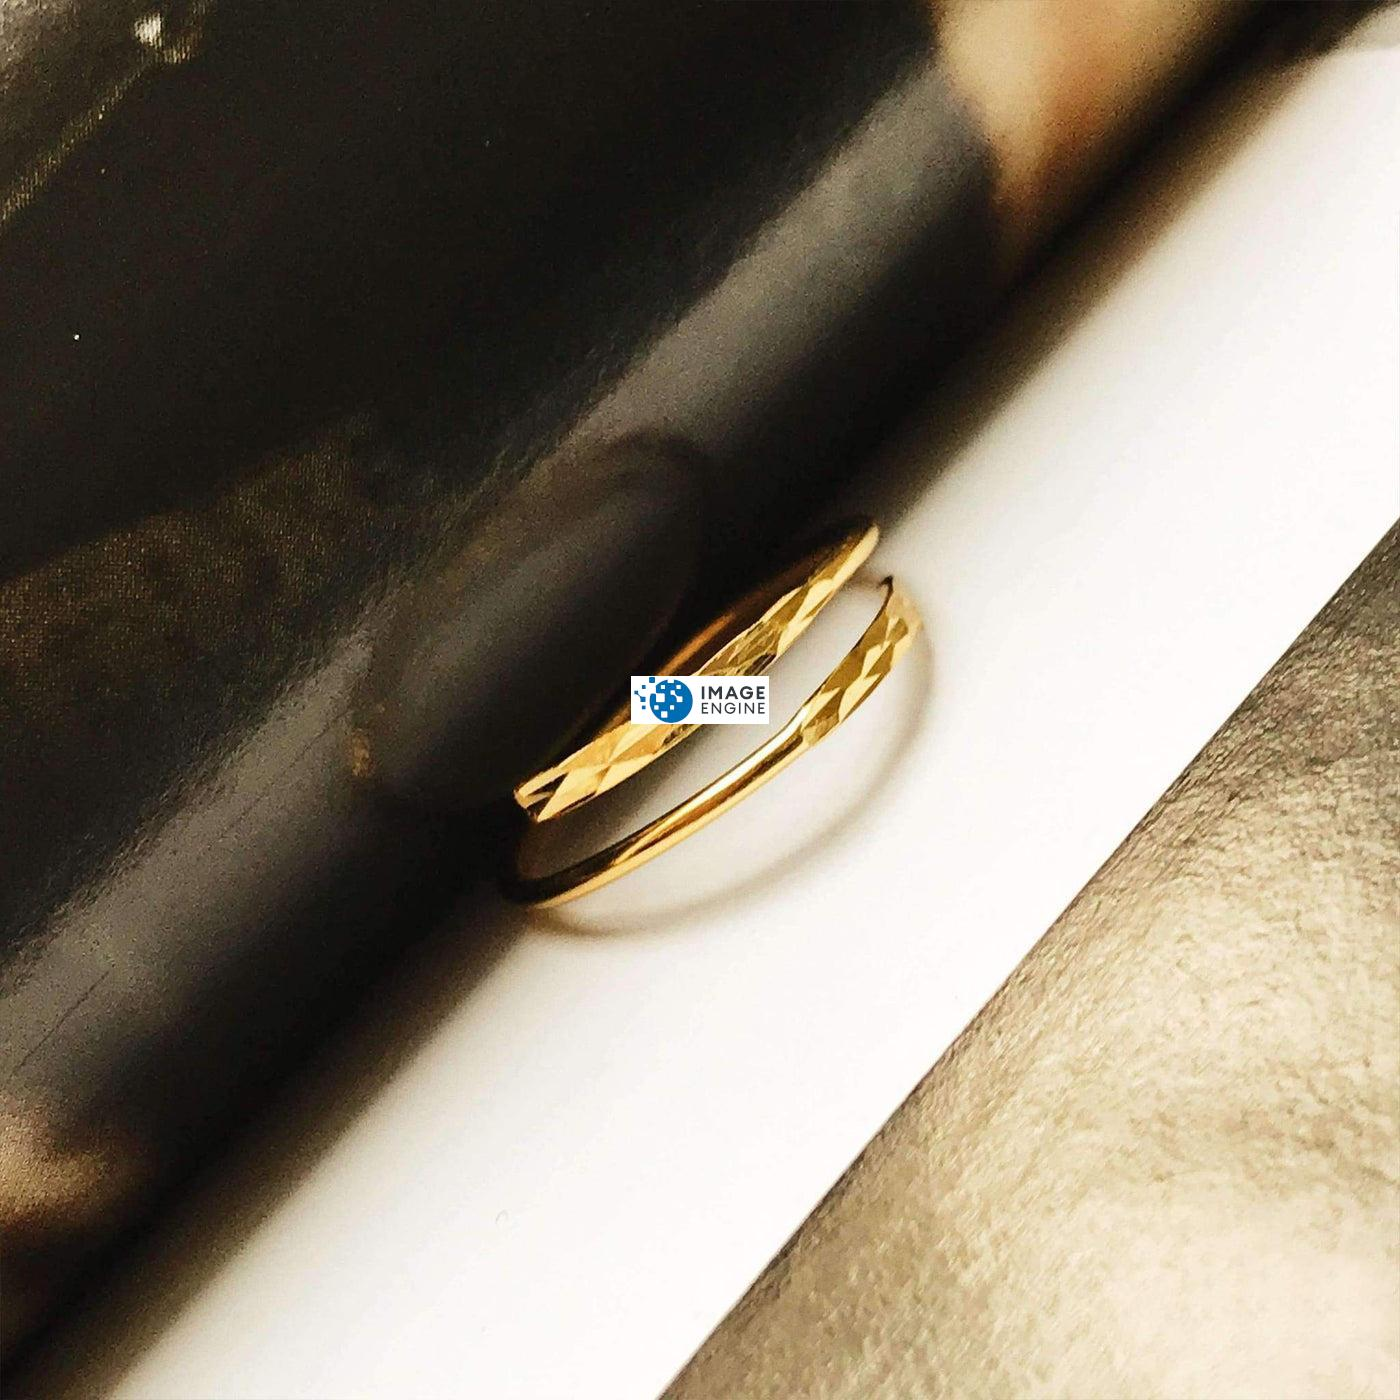 Minimalist Thumb Ring - In Between Pages Higher Angle - 18K Yellow Gold Vermeil